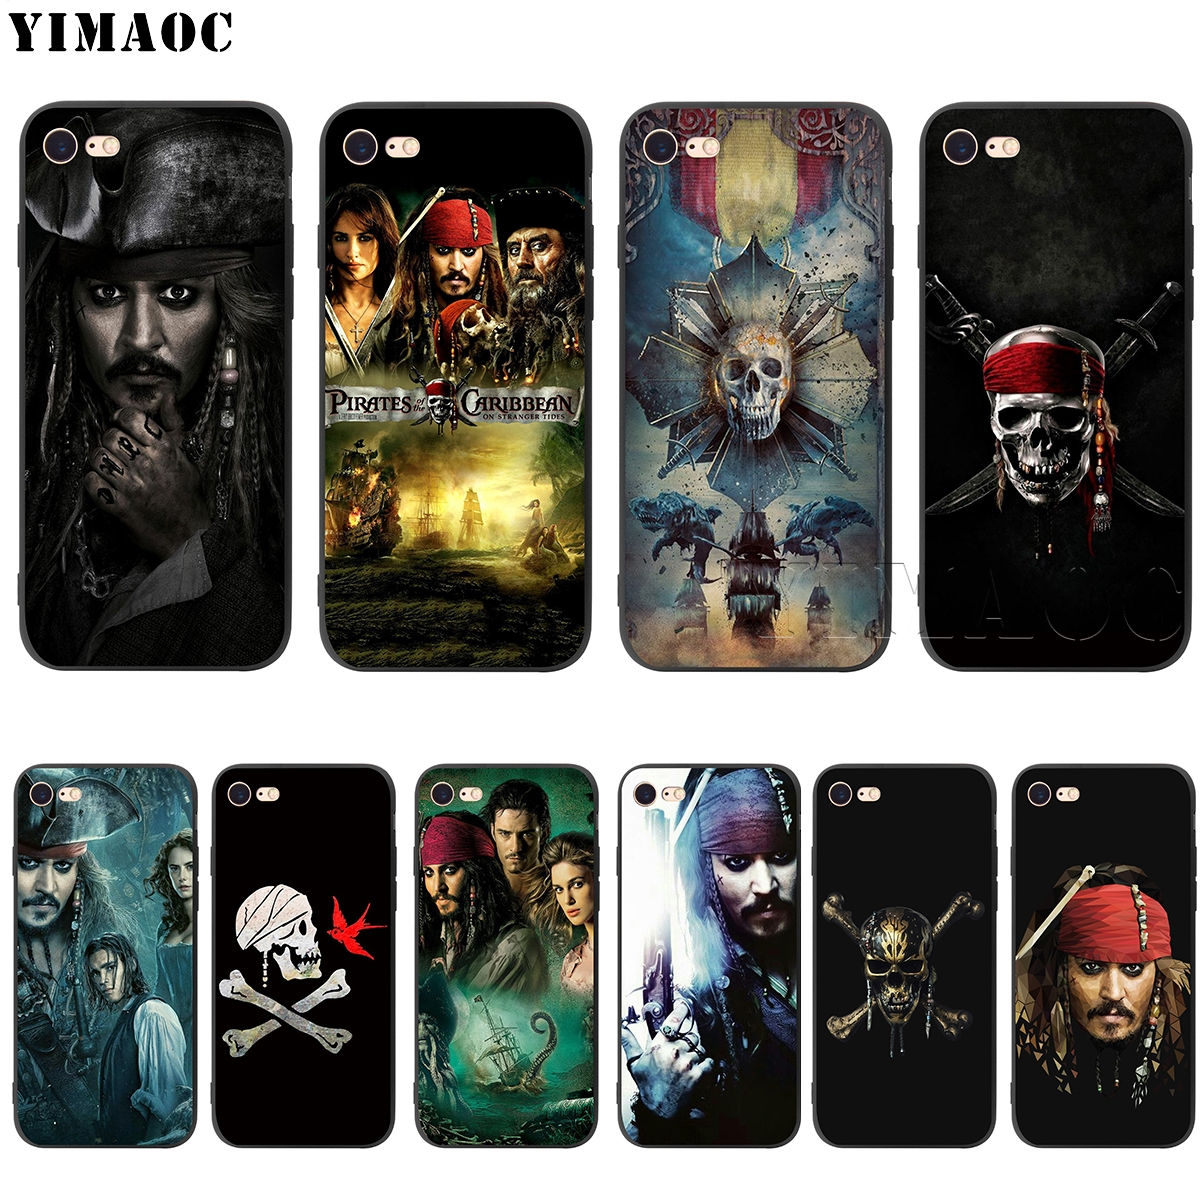 YIMAOC Pirates Of The Caribbean Silicone Soft Case for iPhone 5 5S SE 6 6S 7 8 Plus X